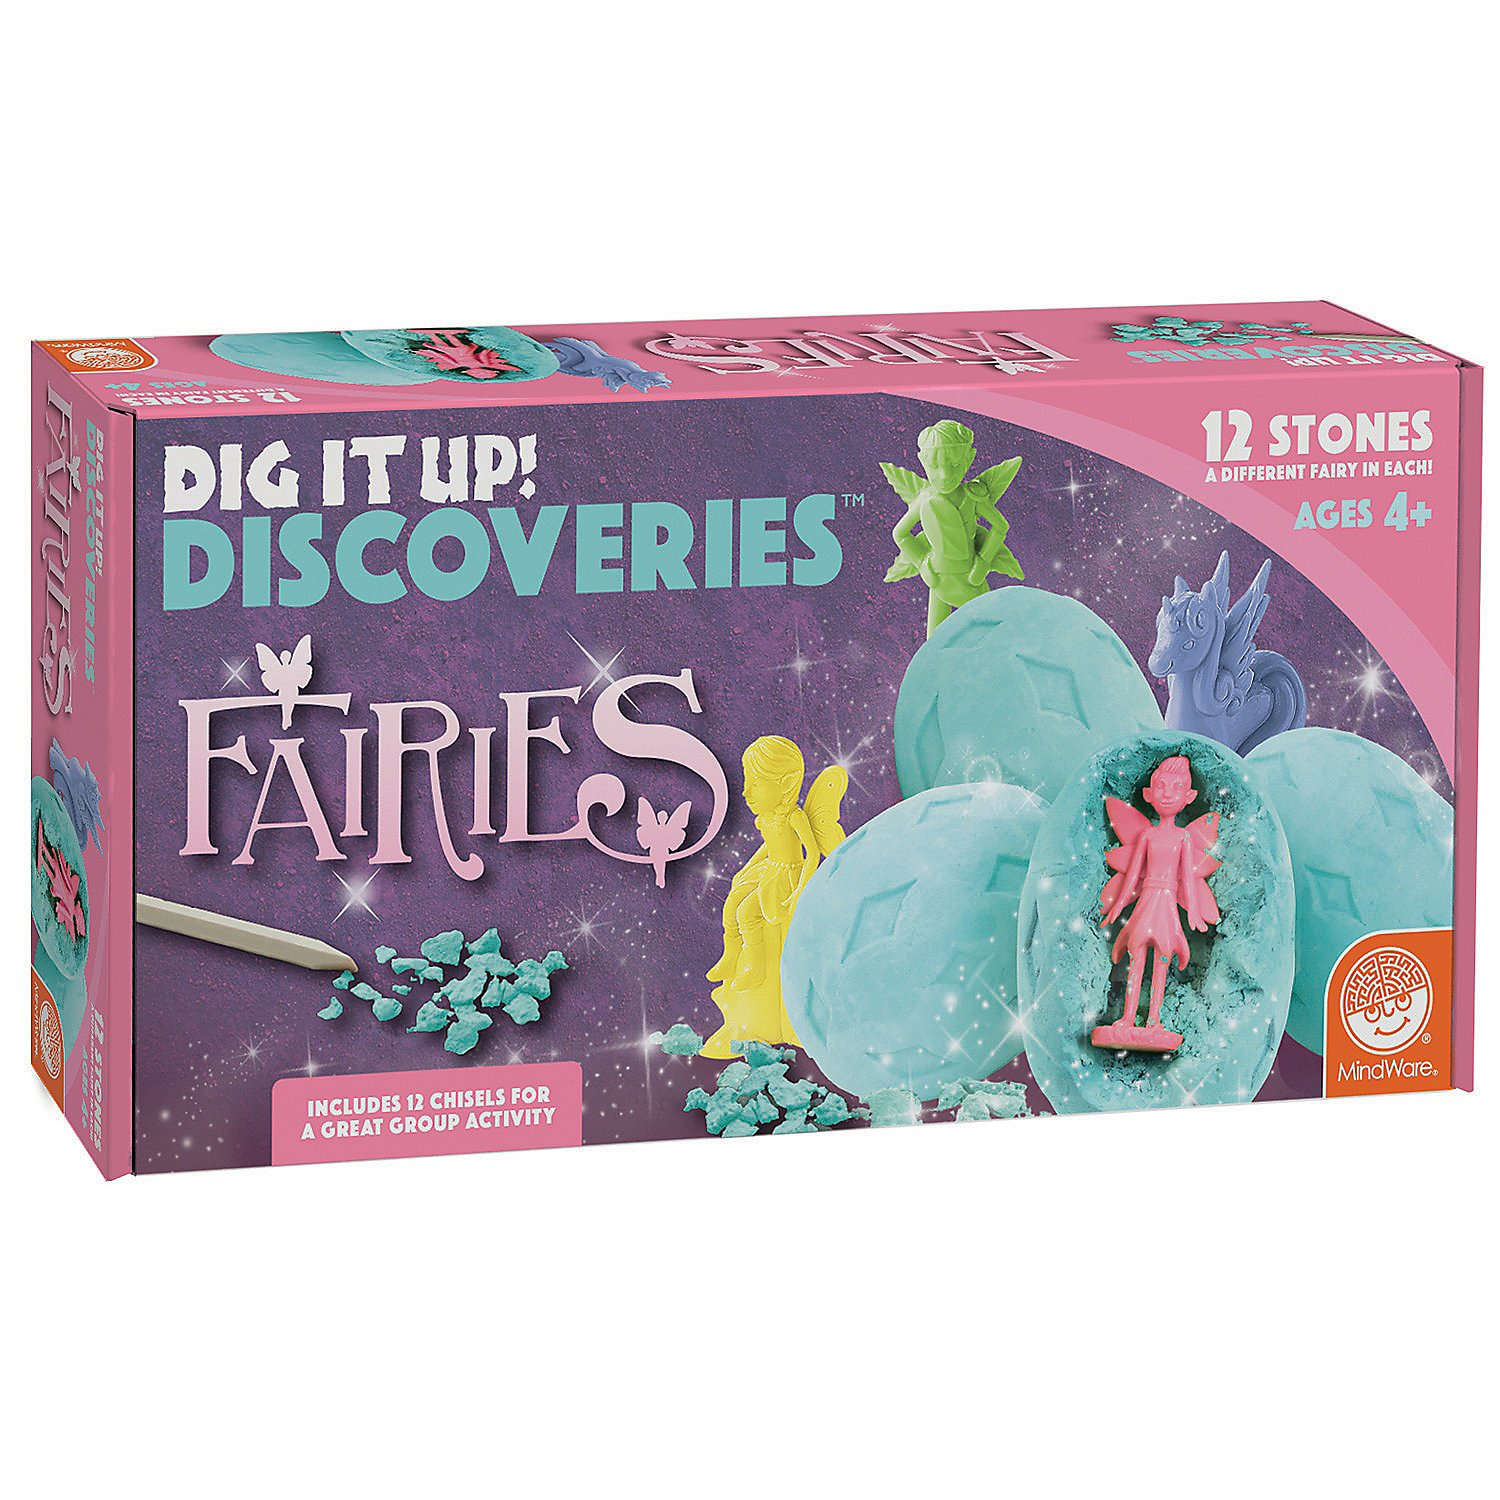 DIG IT UP! DISCOVERIES: FAIRIES